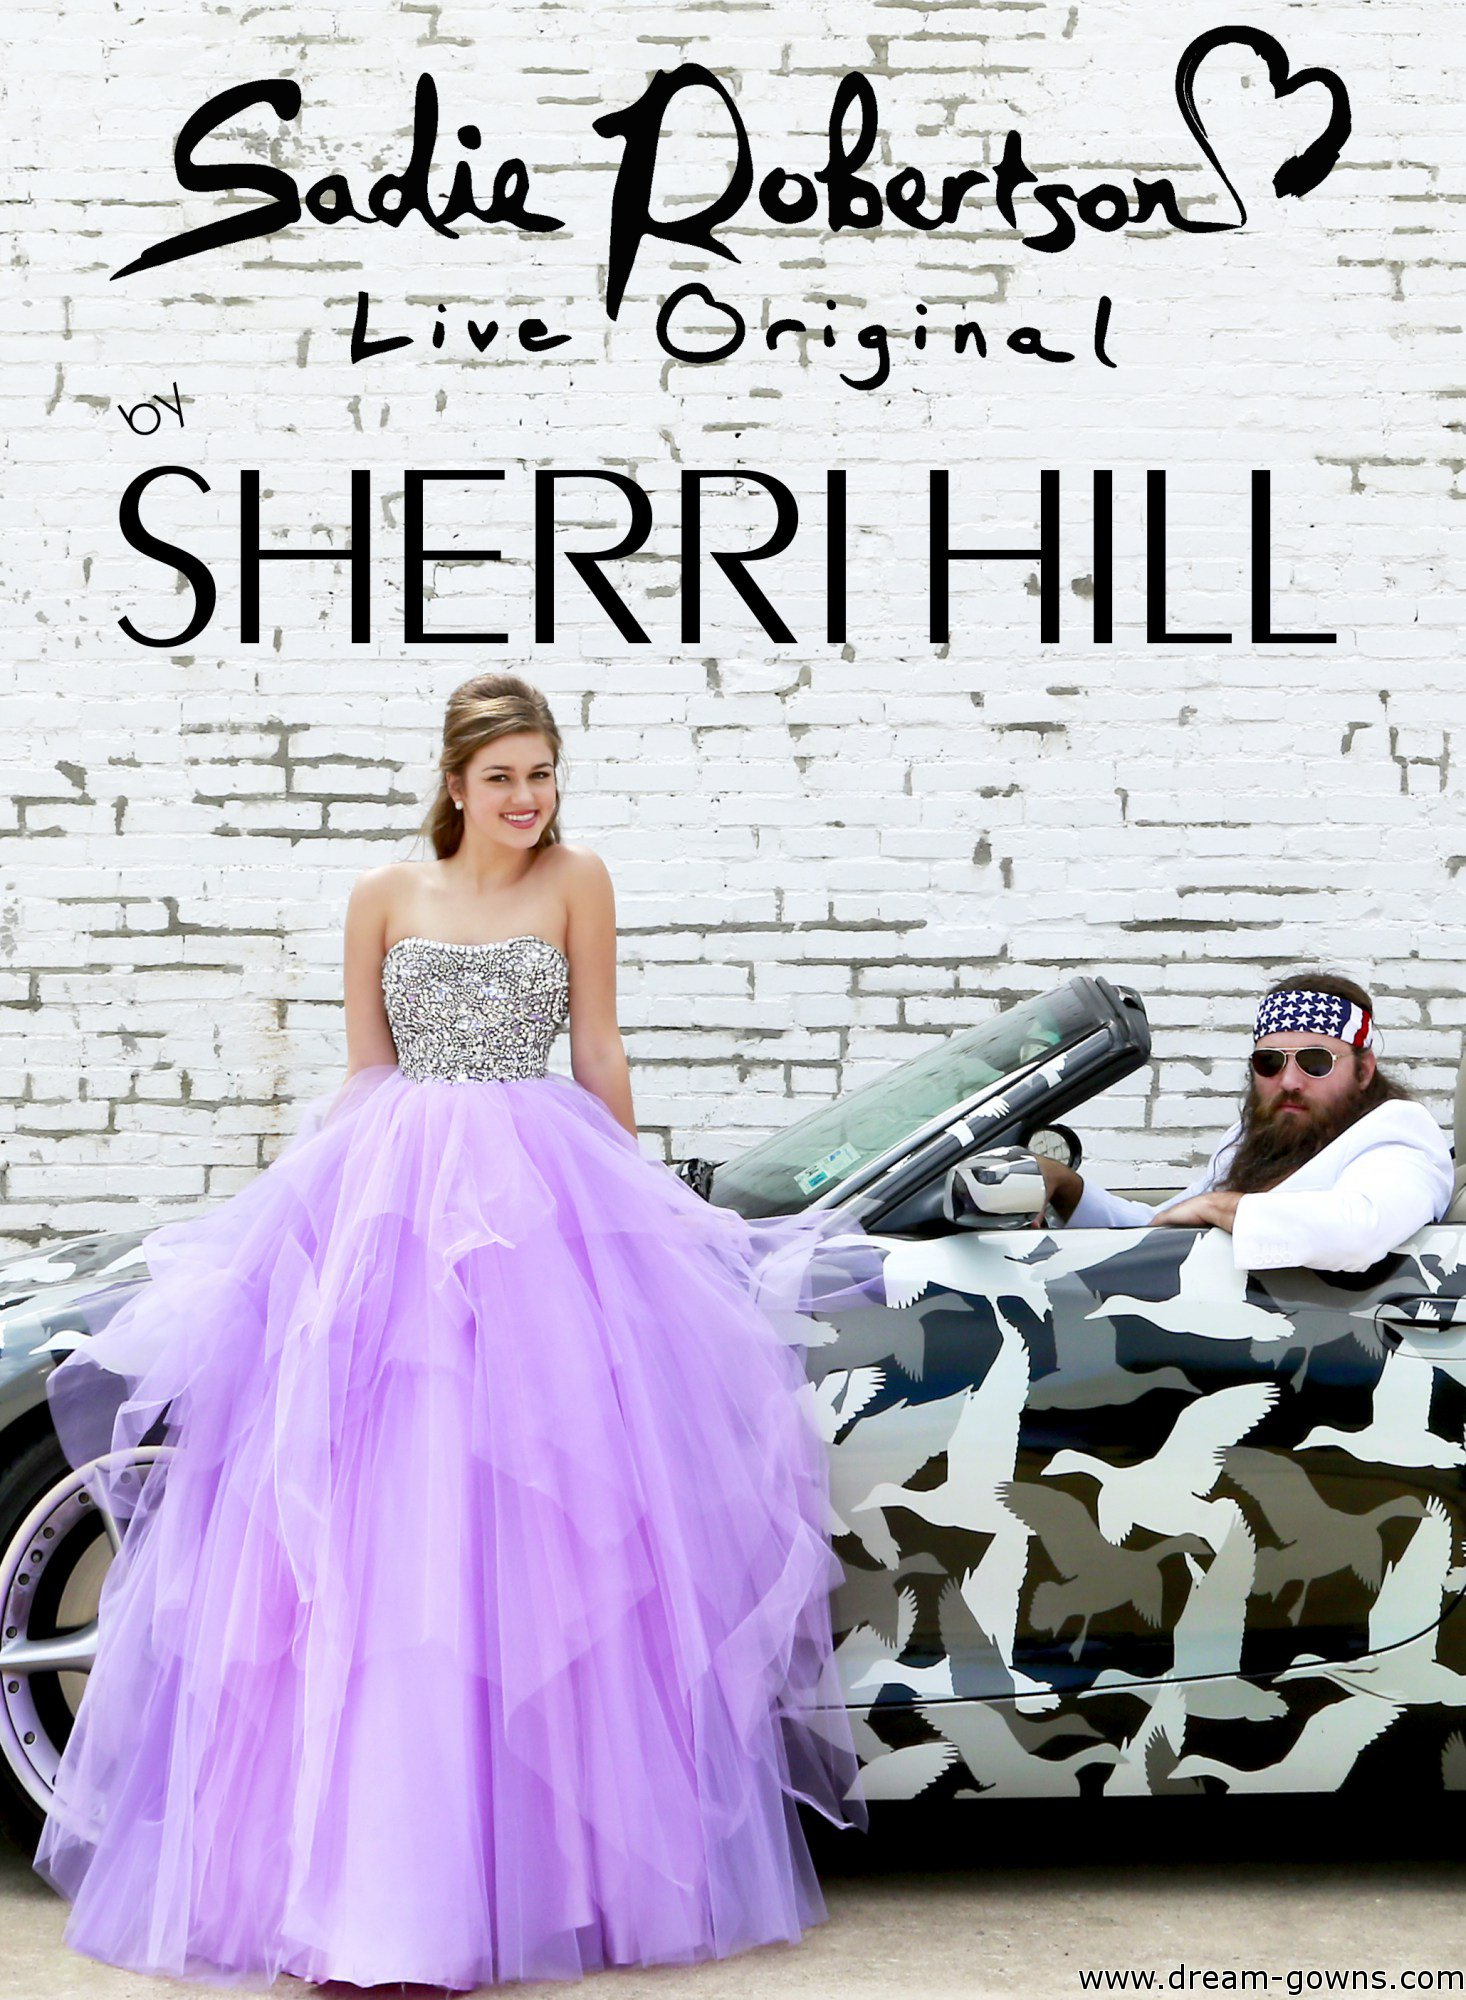 Sadie Robertson Live Original by Sherri Hill | Dream Gowns